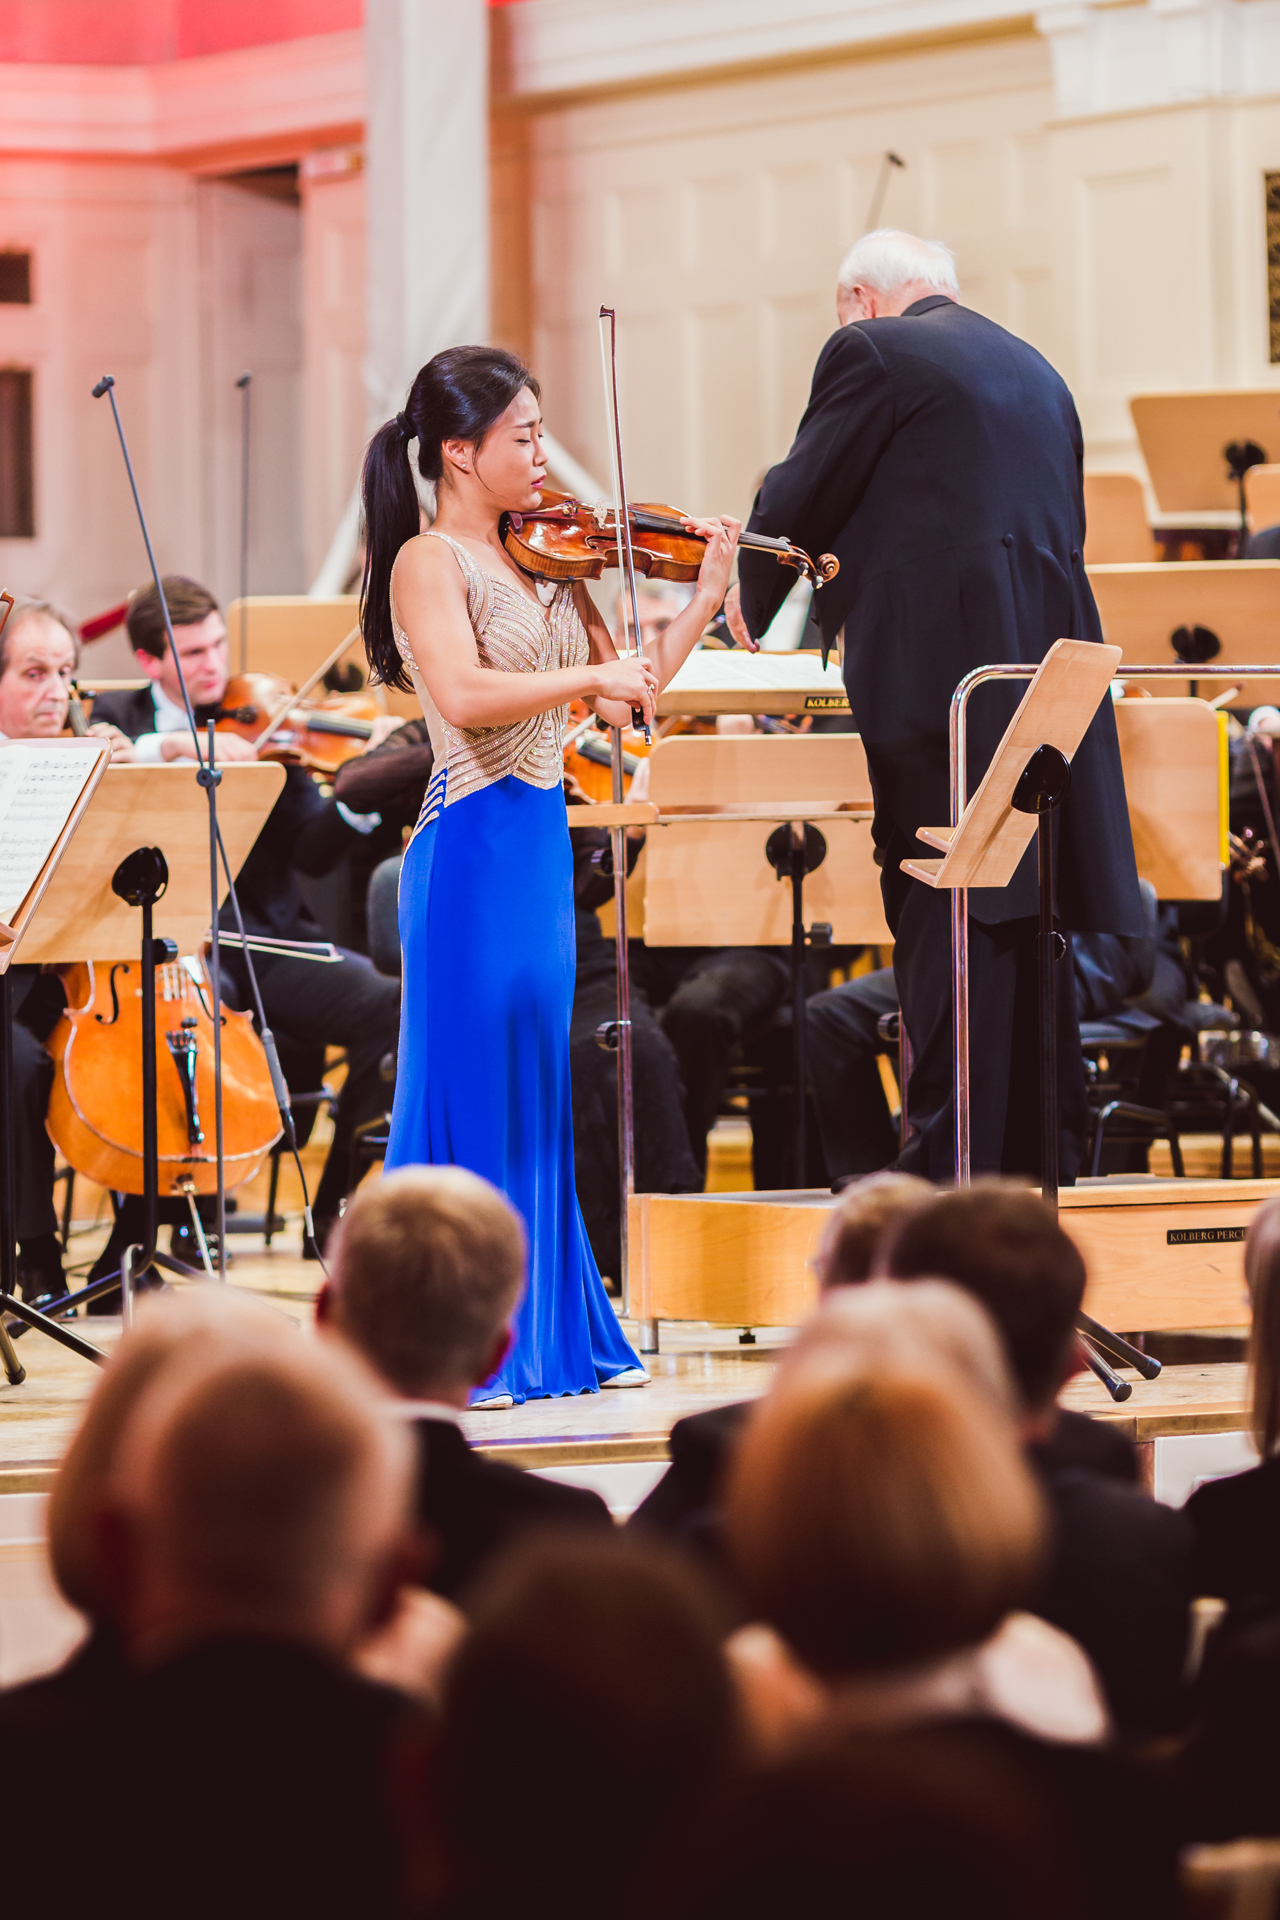 Opening Concert of the 15th International H. Wieniawski Violin Competition: Soyoung Yoon - violin, The Deutsche Kammerphilharmonie Bremen cond. by Krzysztof Penderecki (8.10.2016)